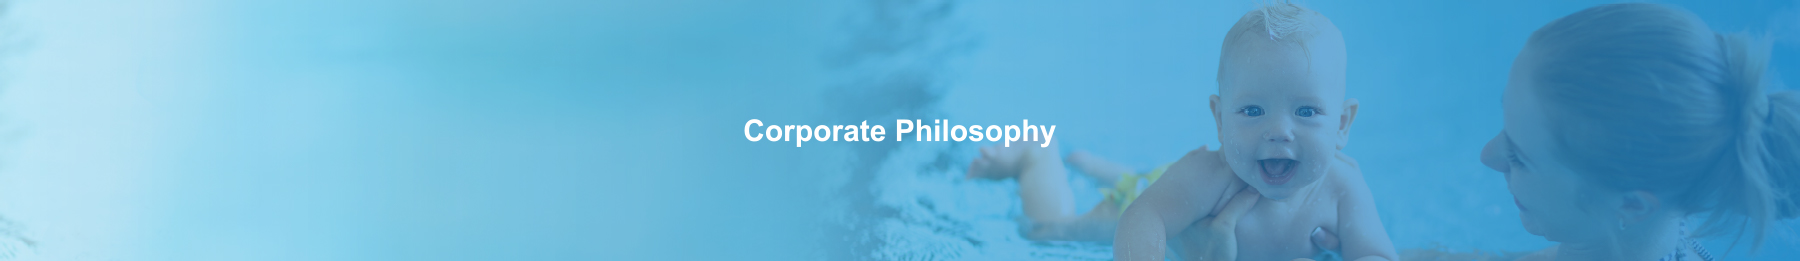 Corporate Philosophy